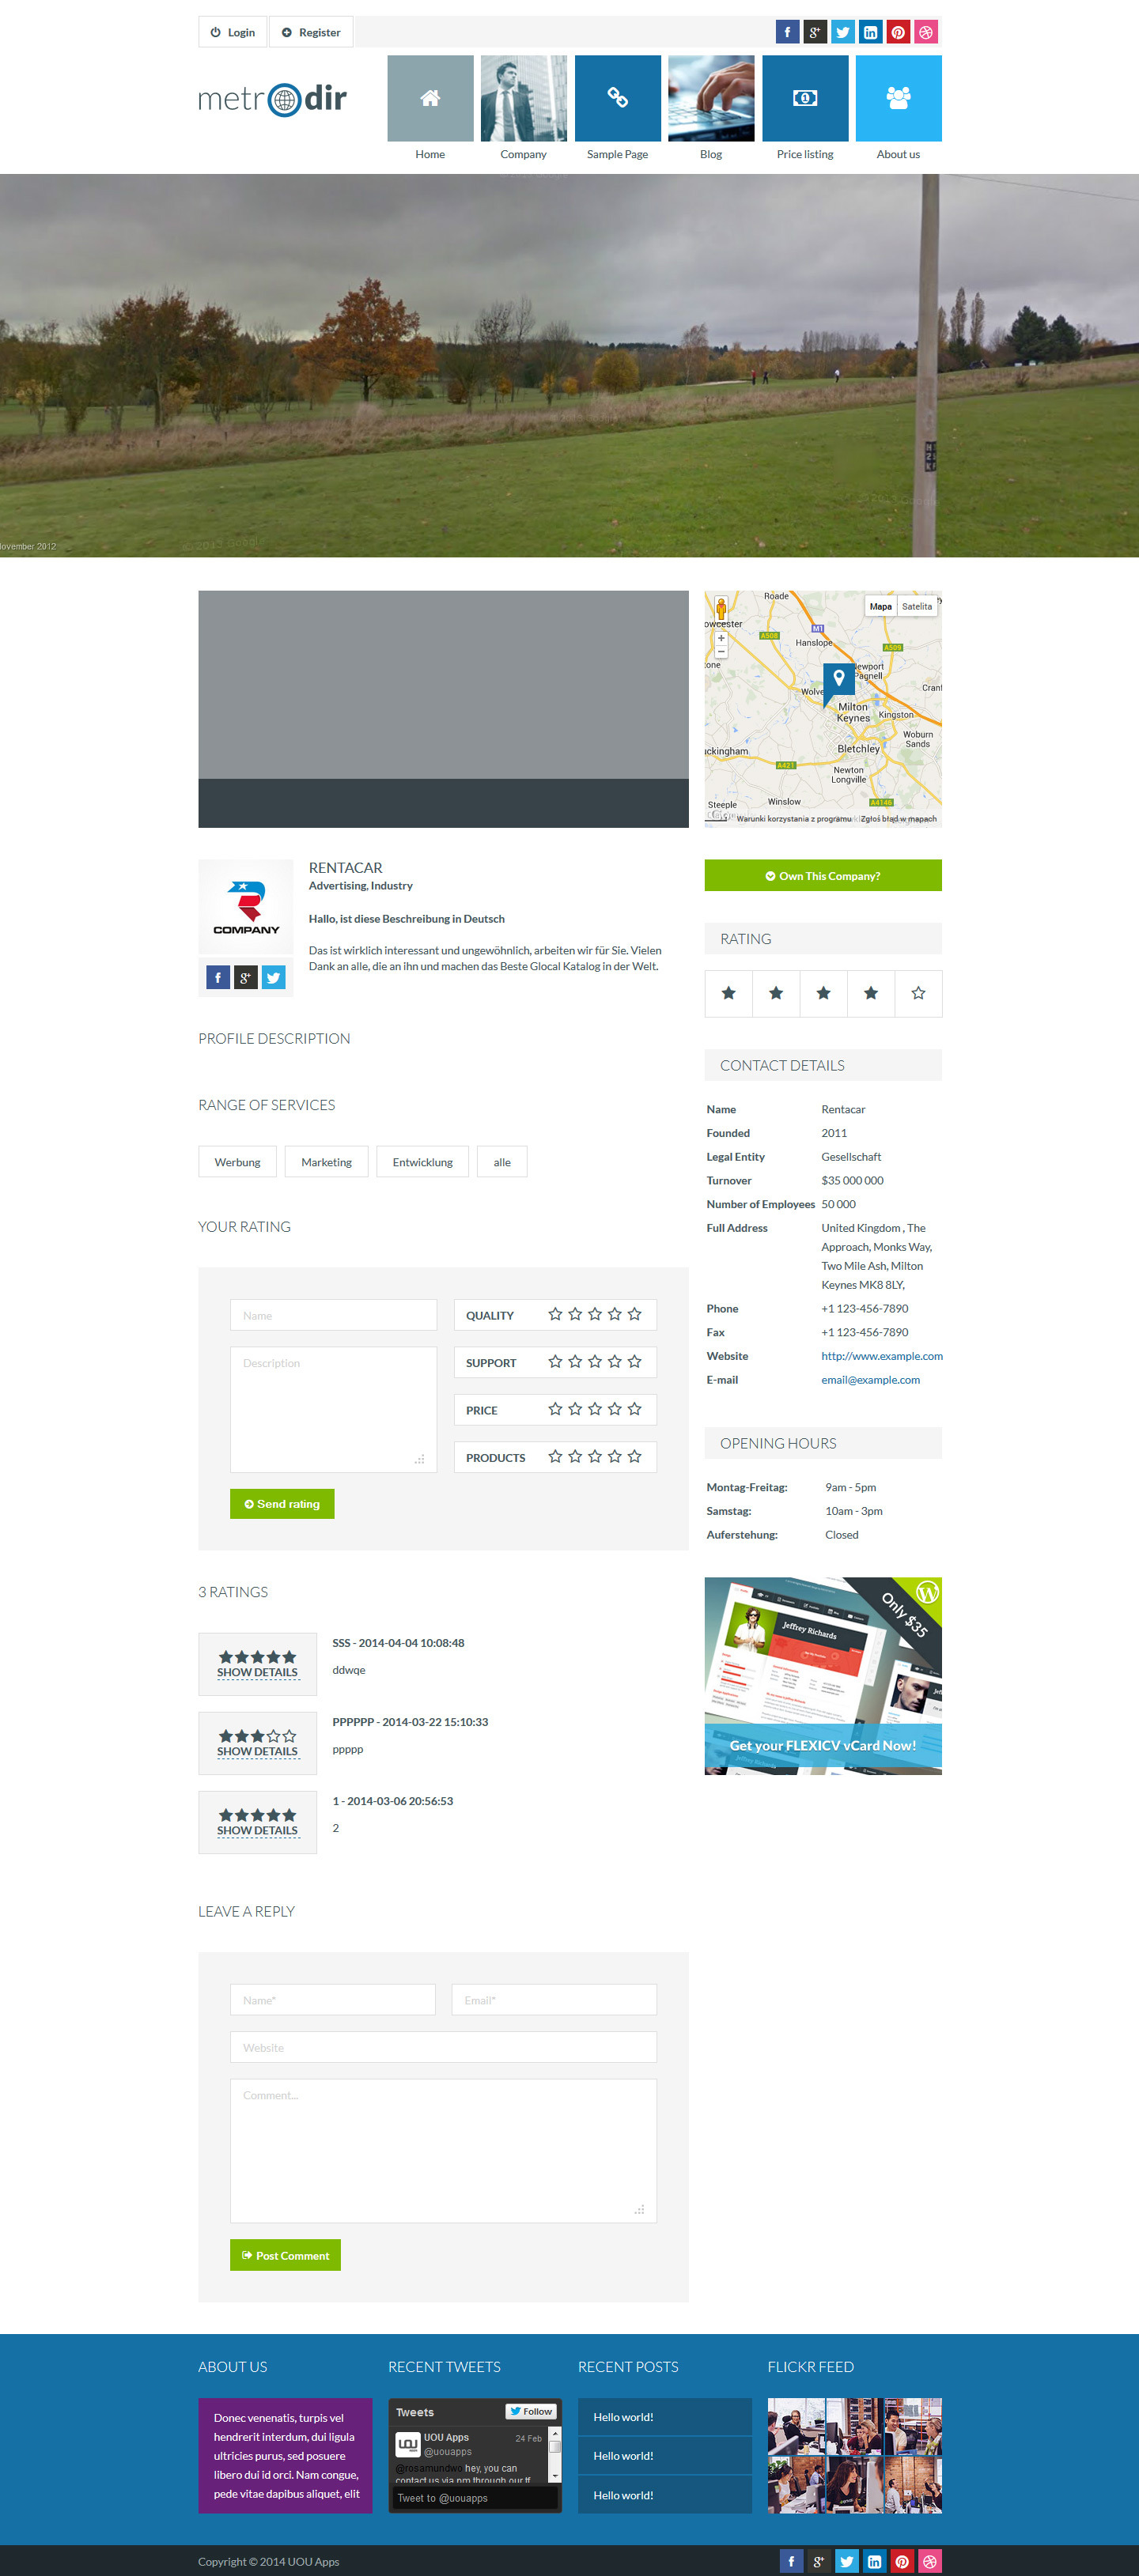 Metrodir - Directory & Listings WordPress Theme